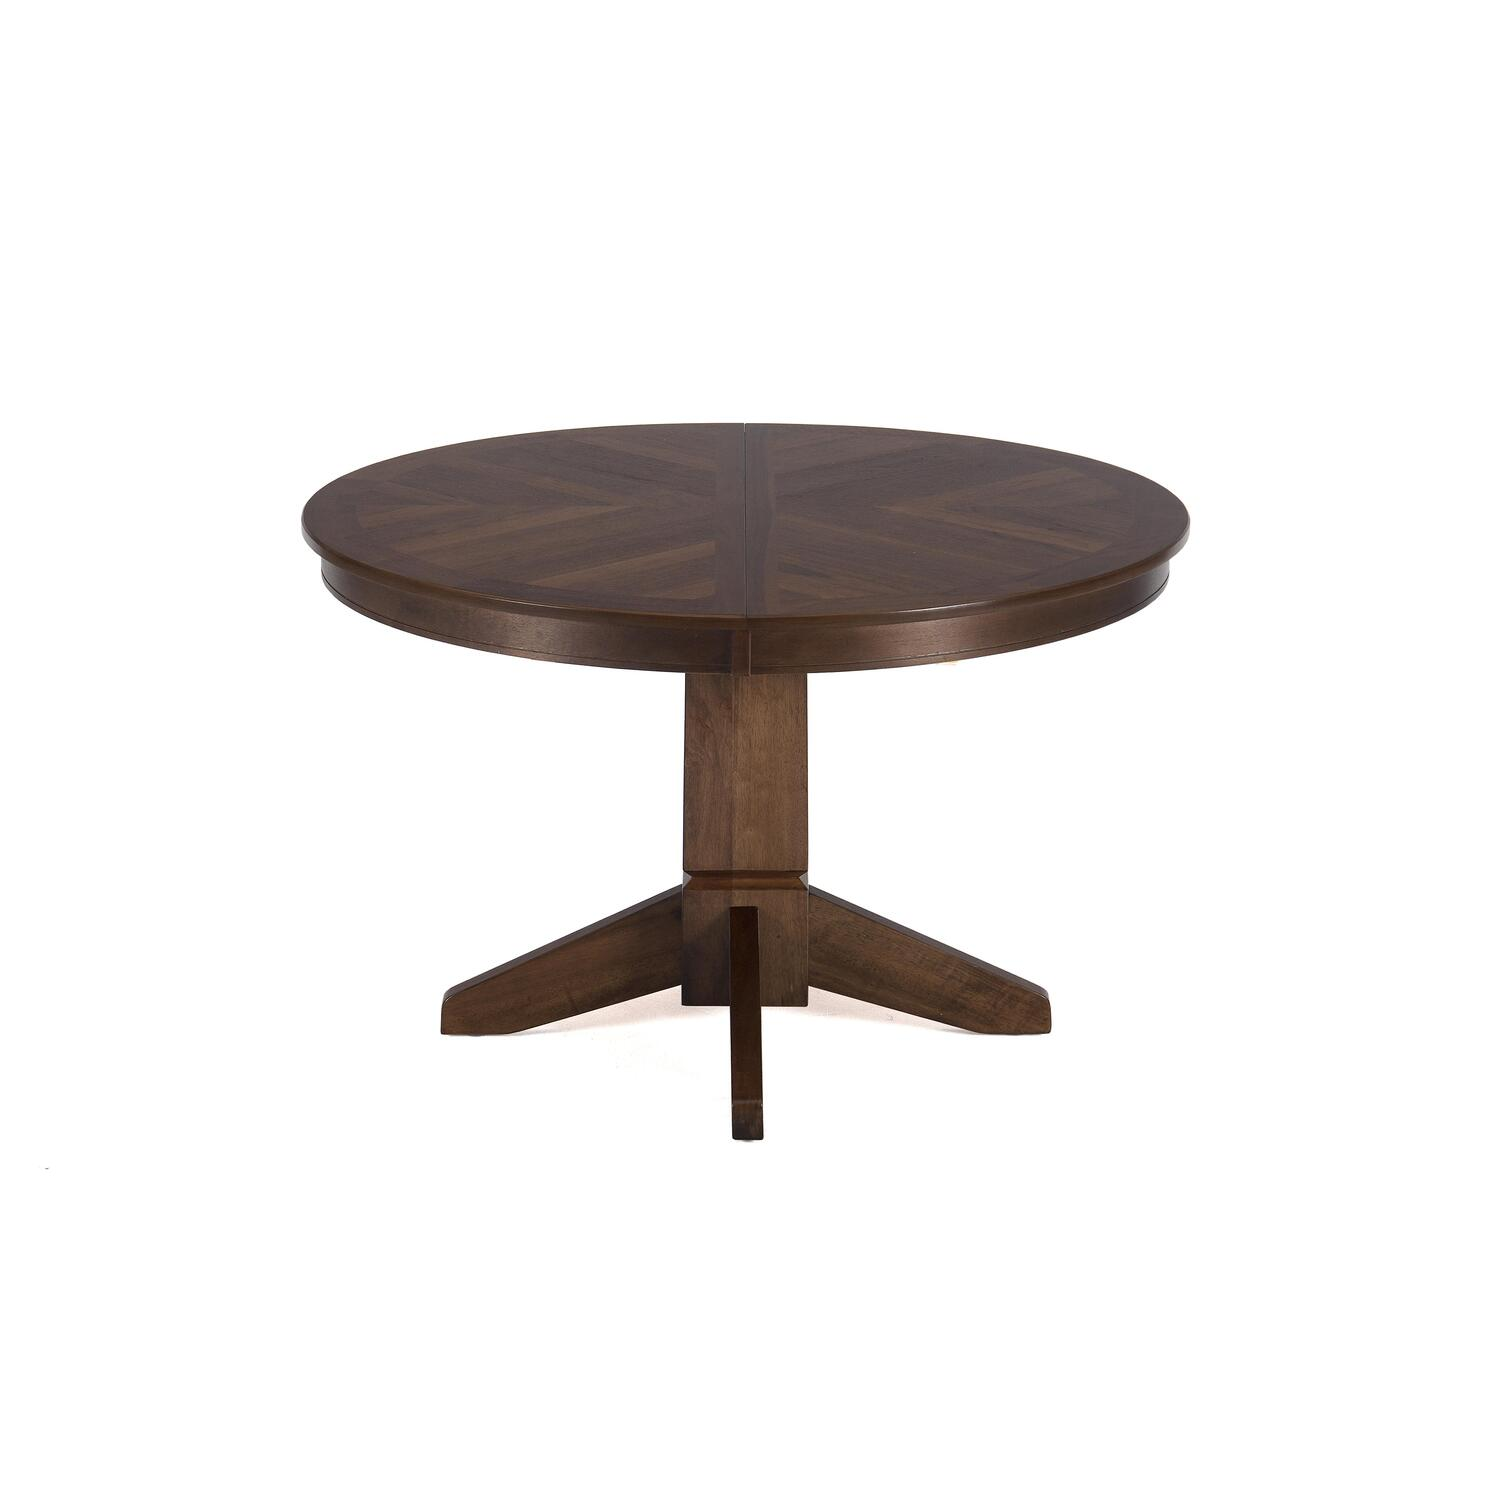 Fascinating Round To Oval Dining Table Photos Design Ideas Dievoon